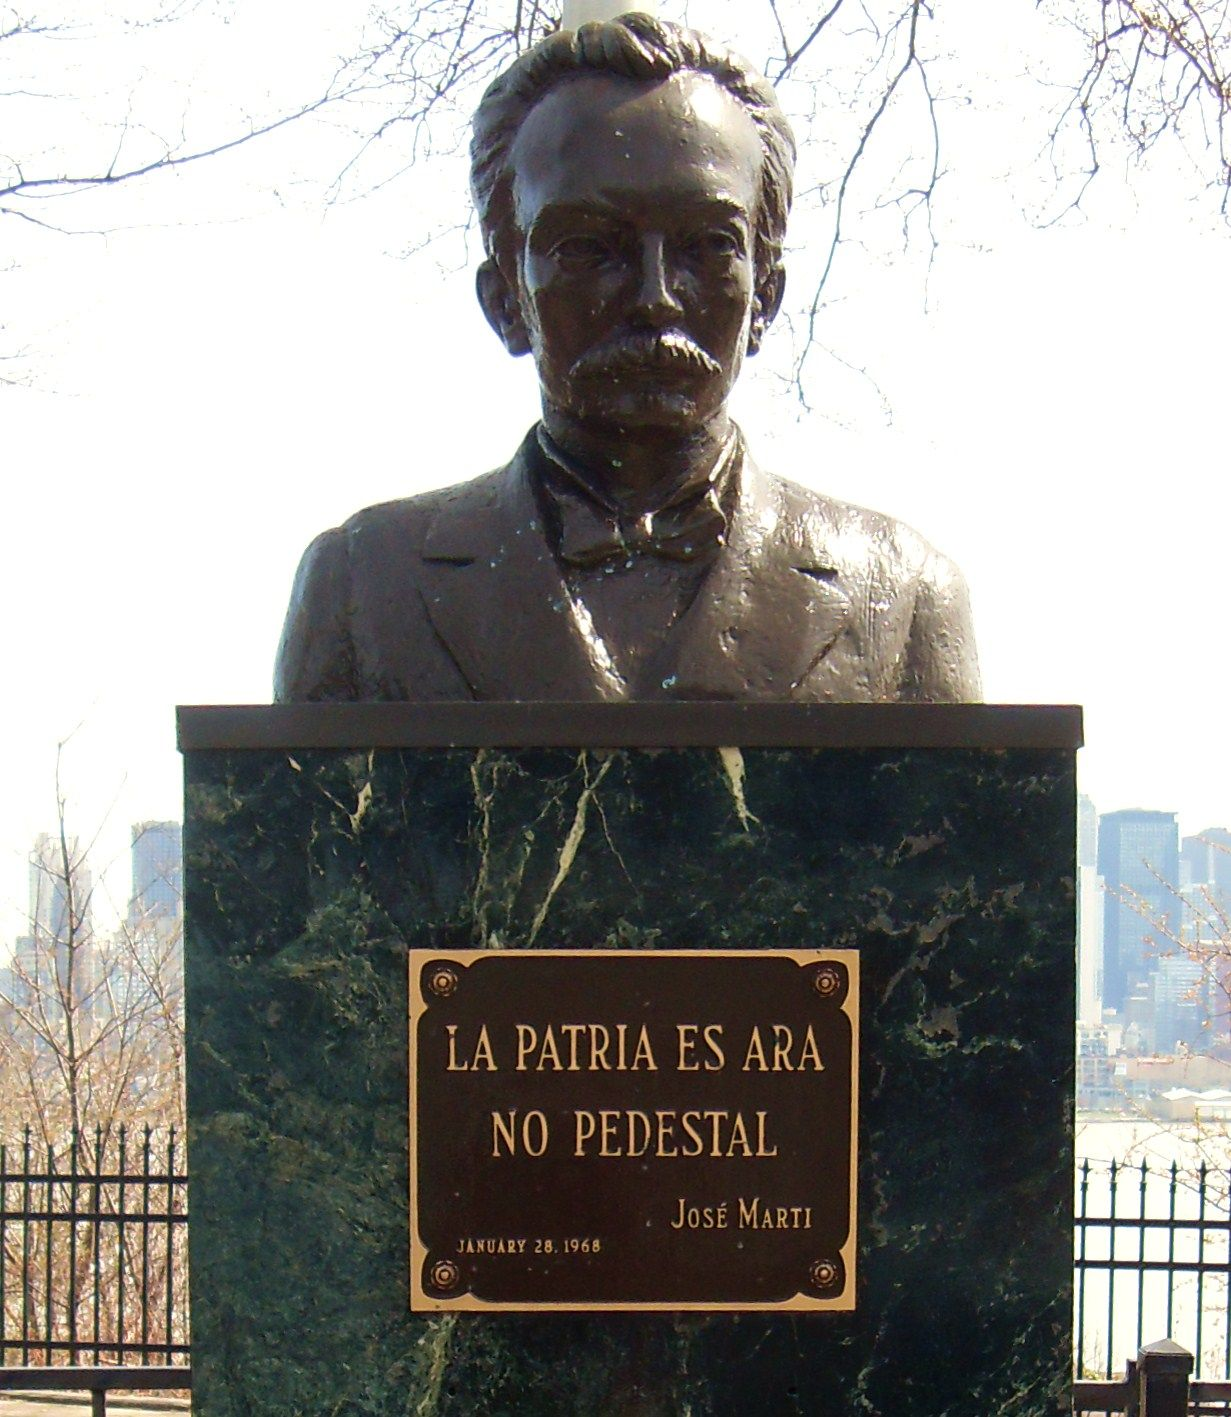 Monument Of Jose Martí In West New York Nj Translated It Reads The Motherland Is An Altar Not A Stepping Stone West New York Historical Sites Monument